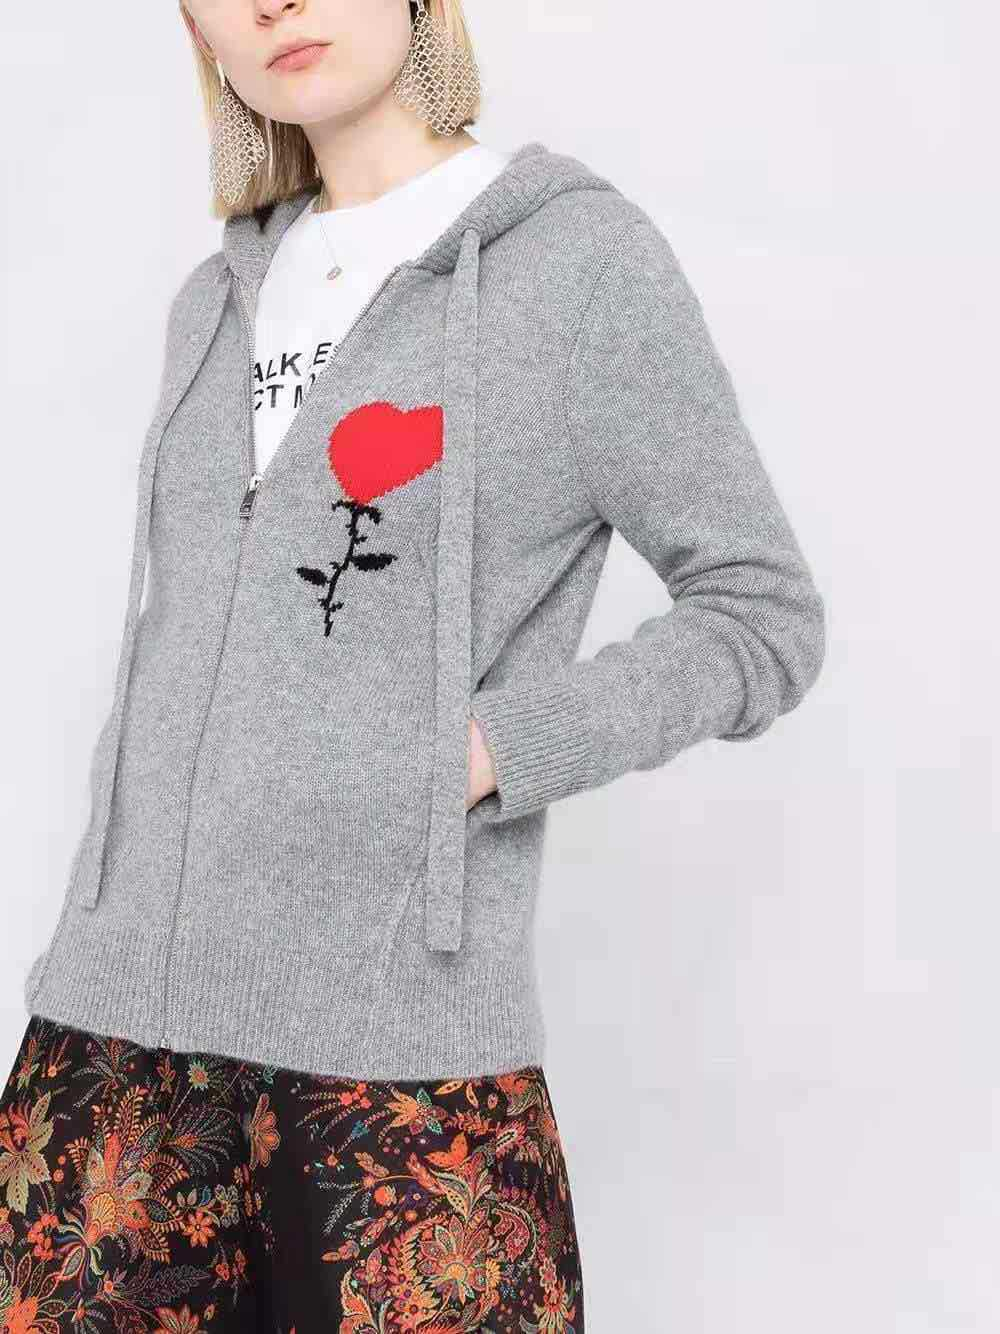 Red Heat Letters Embroidered Women Knitted Hooded Cardigan 2021 New Long Sleeve Gray Zipper Sweater Outwear Tops